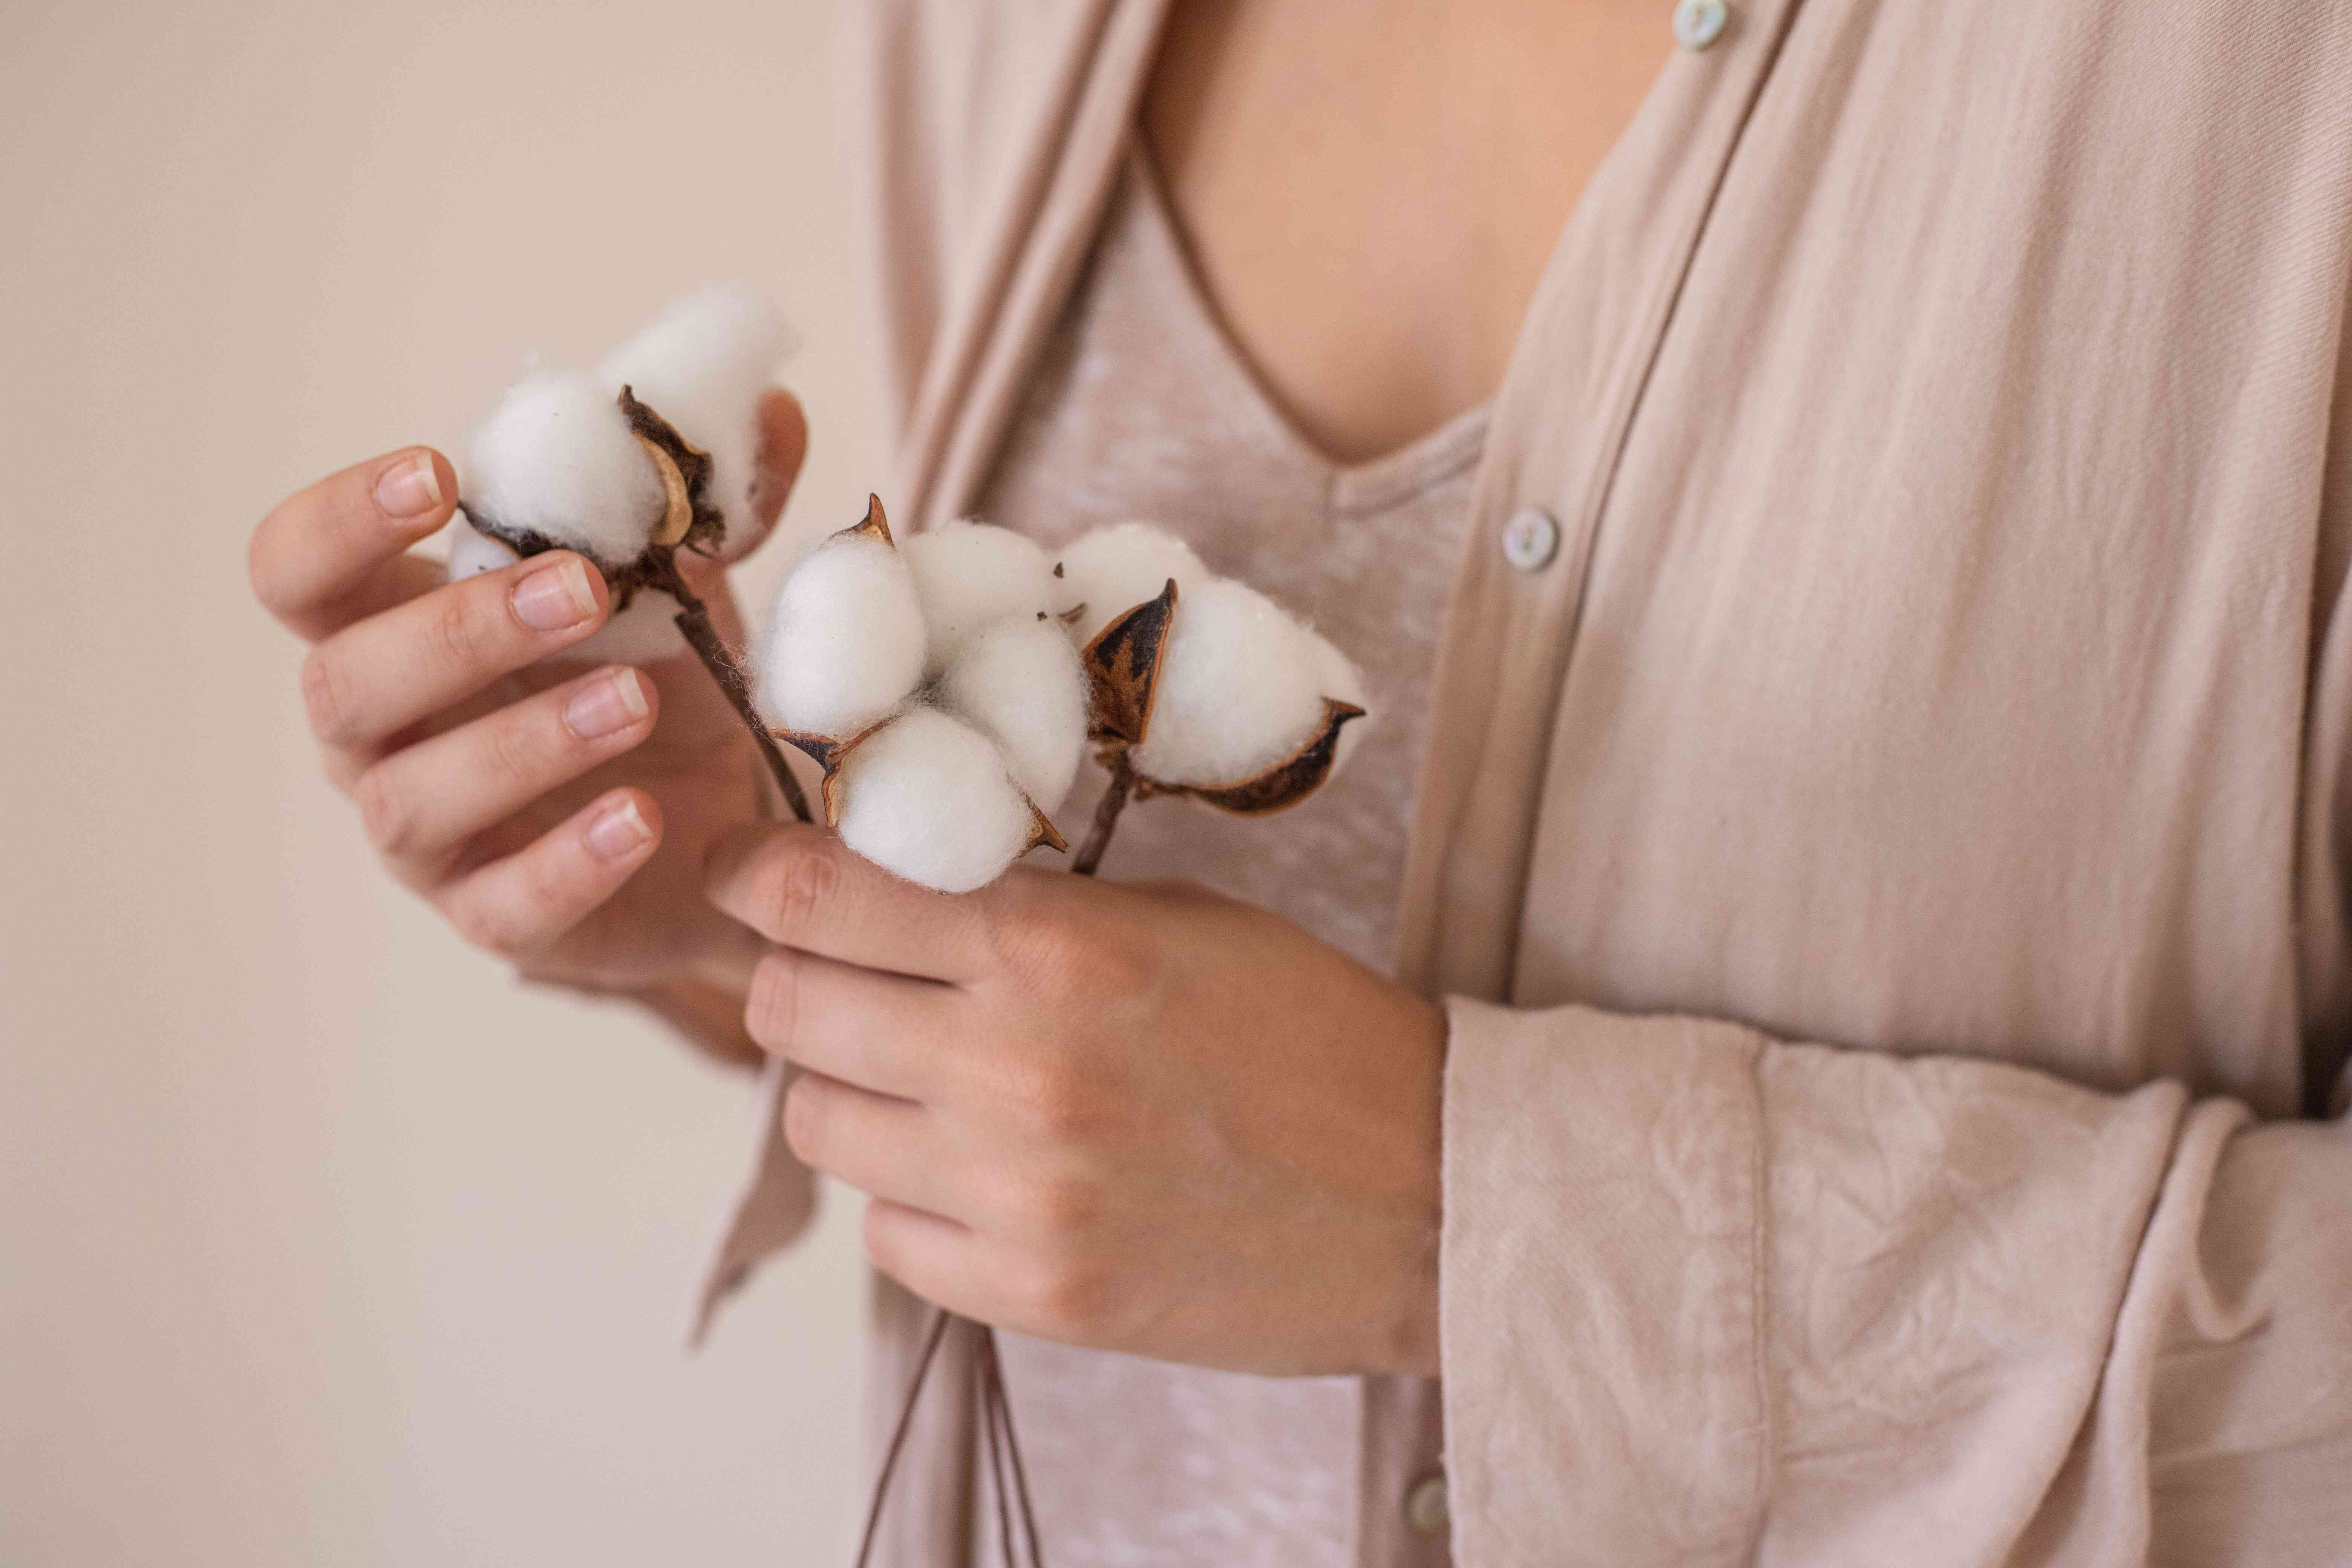 person wearing blush-colored cotton clothing holds cluster of cotton bolls in hands